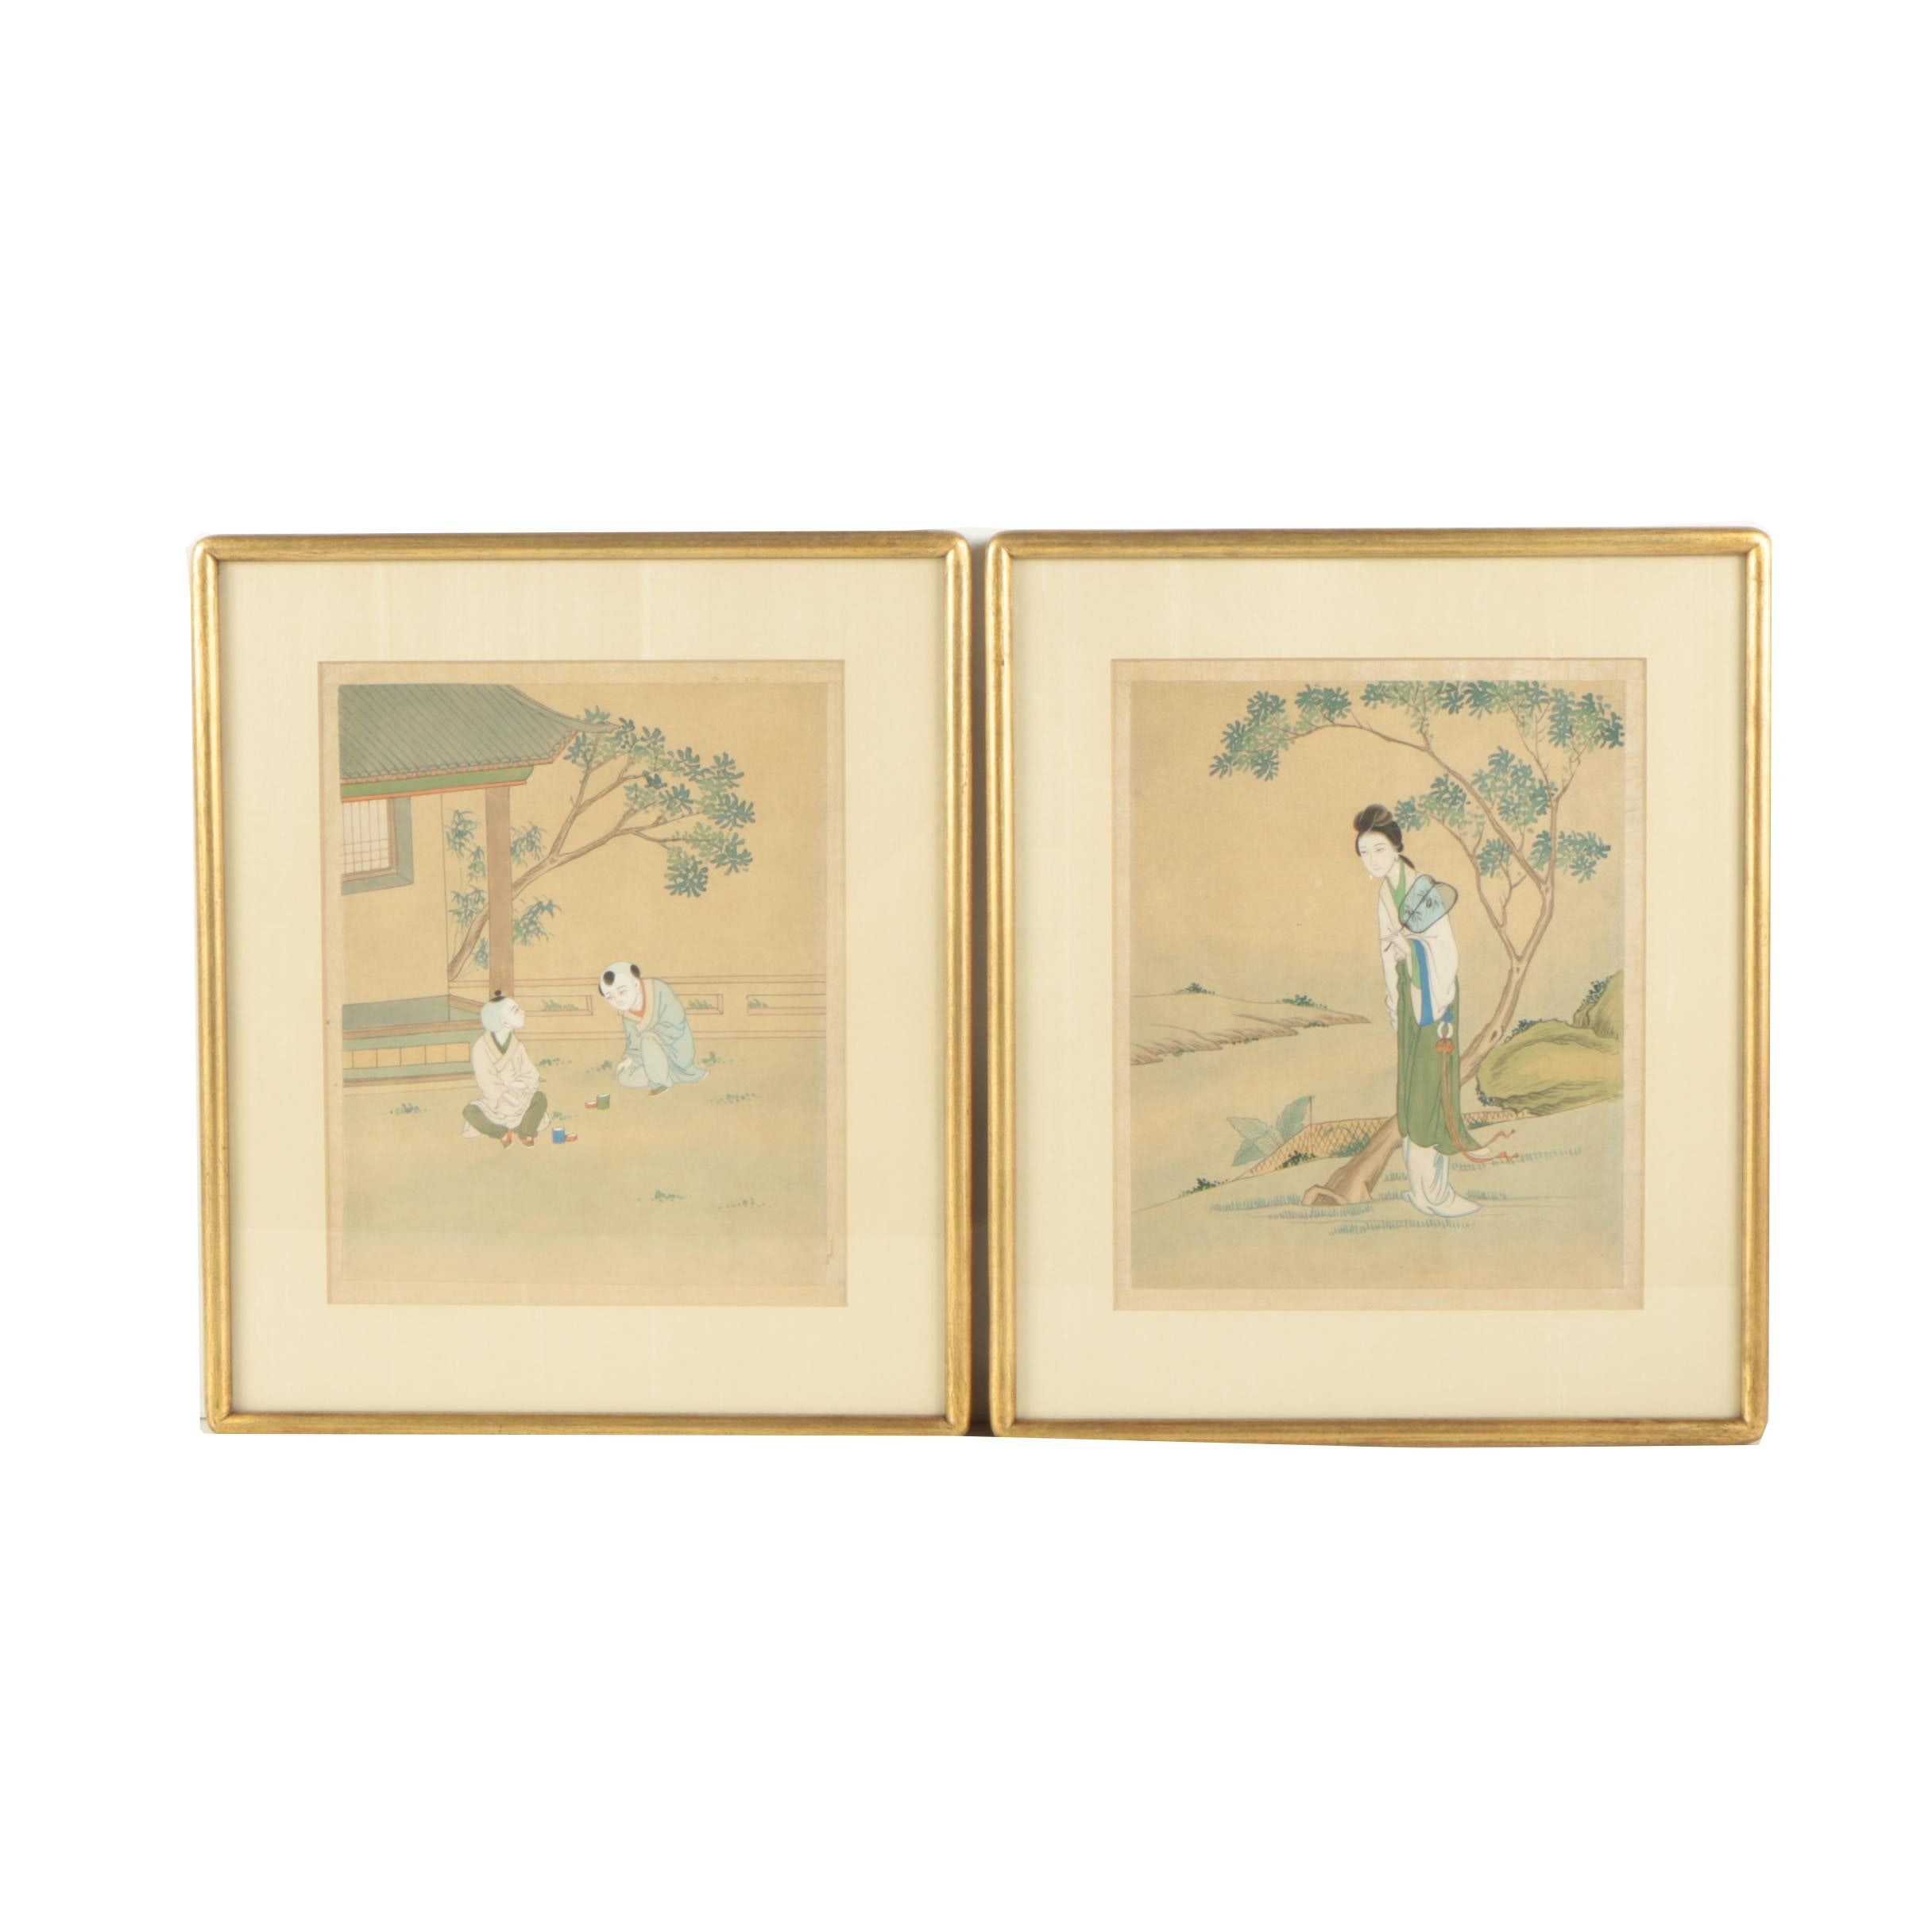 Pair of Chinese Watercolor and Gouache Paintings